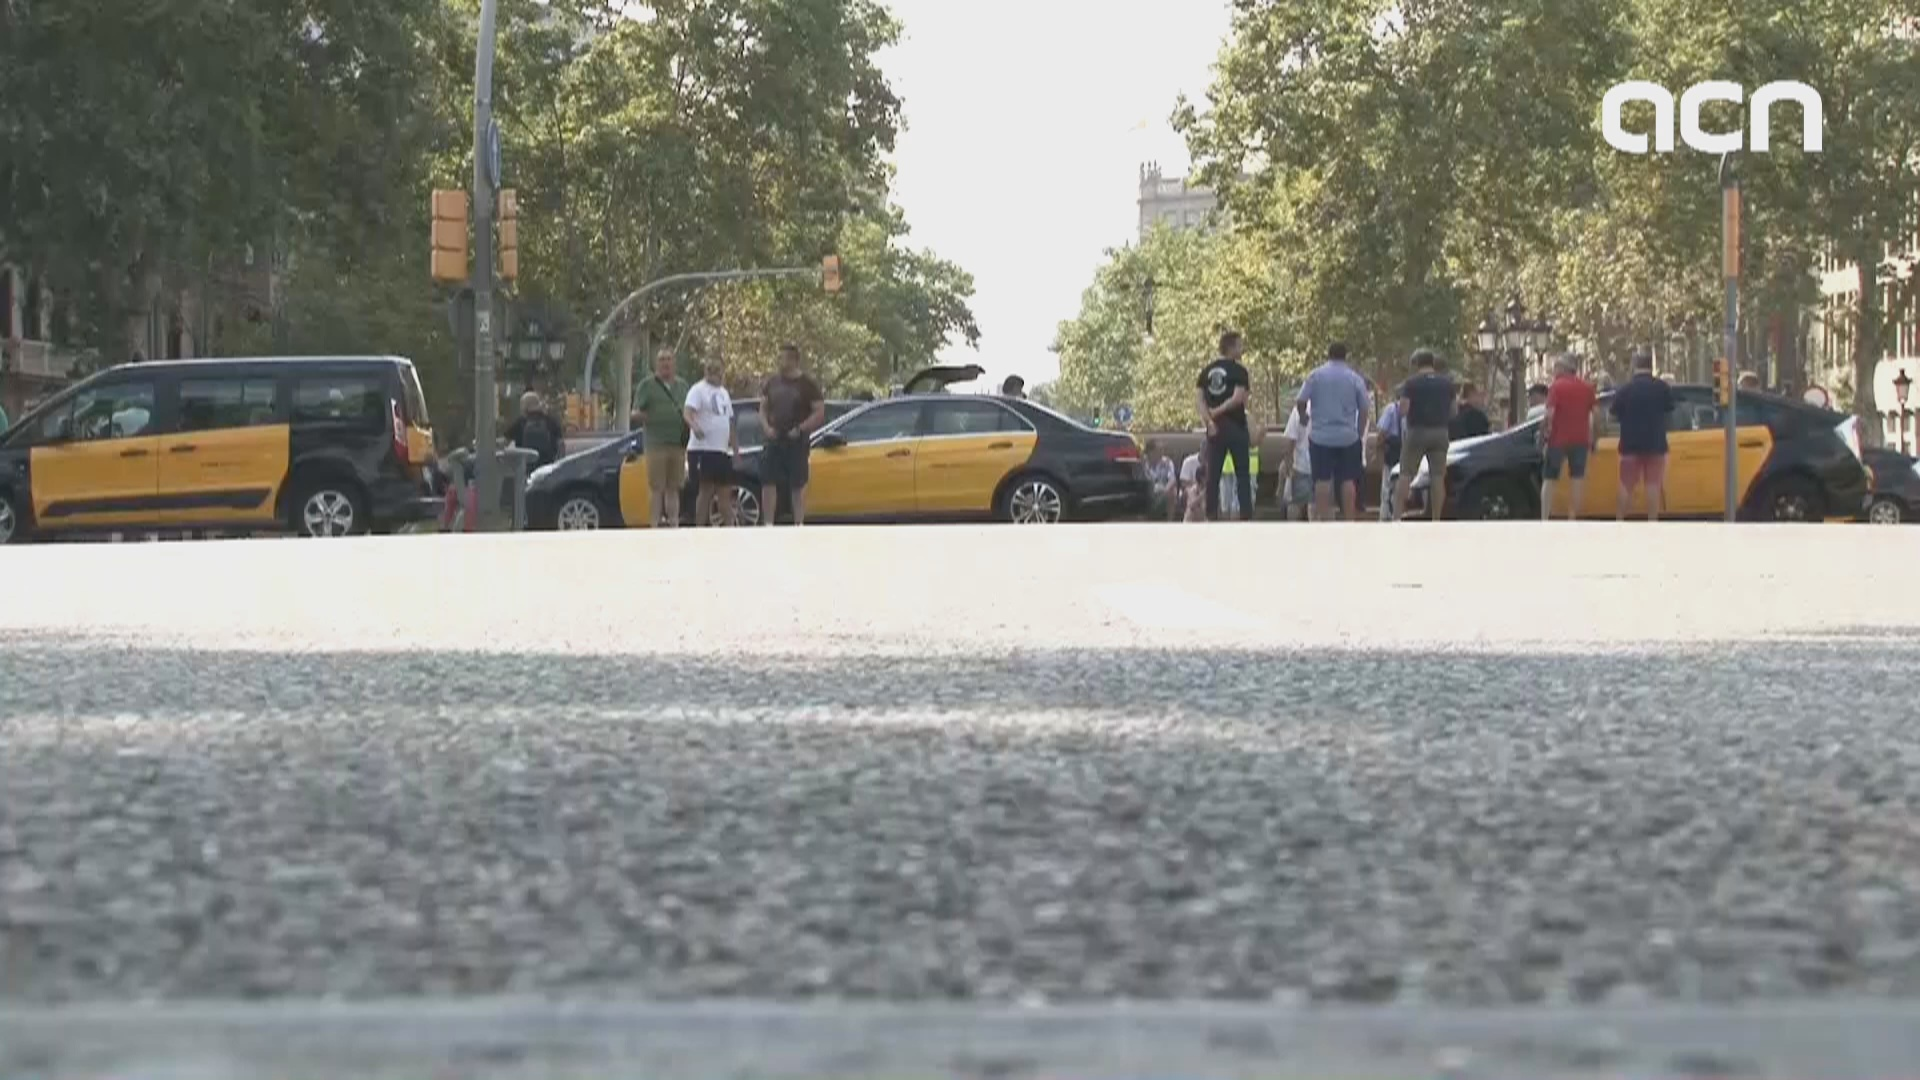 Barcelona taxi drivers on indefinite strike